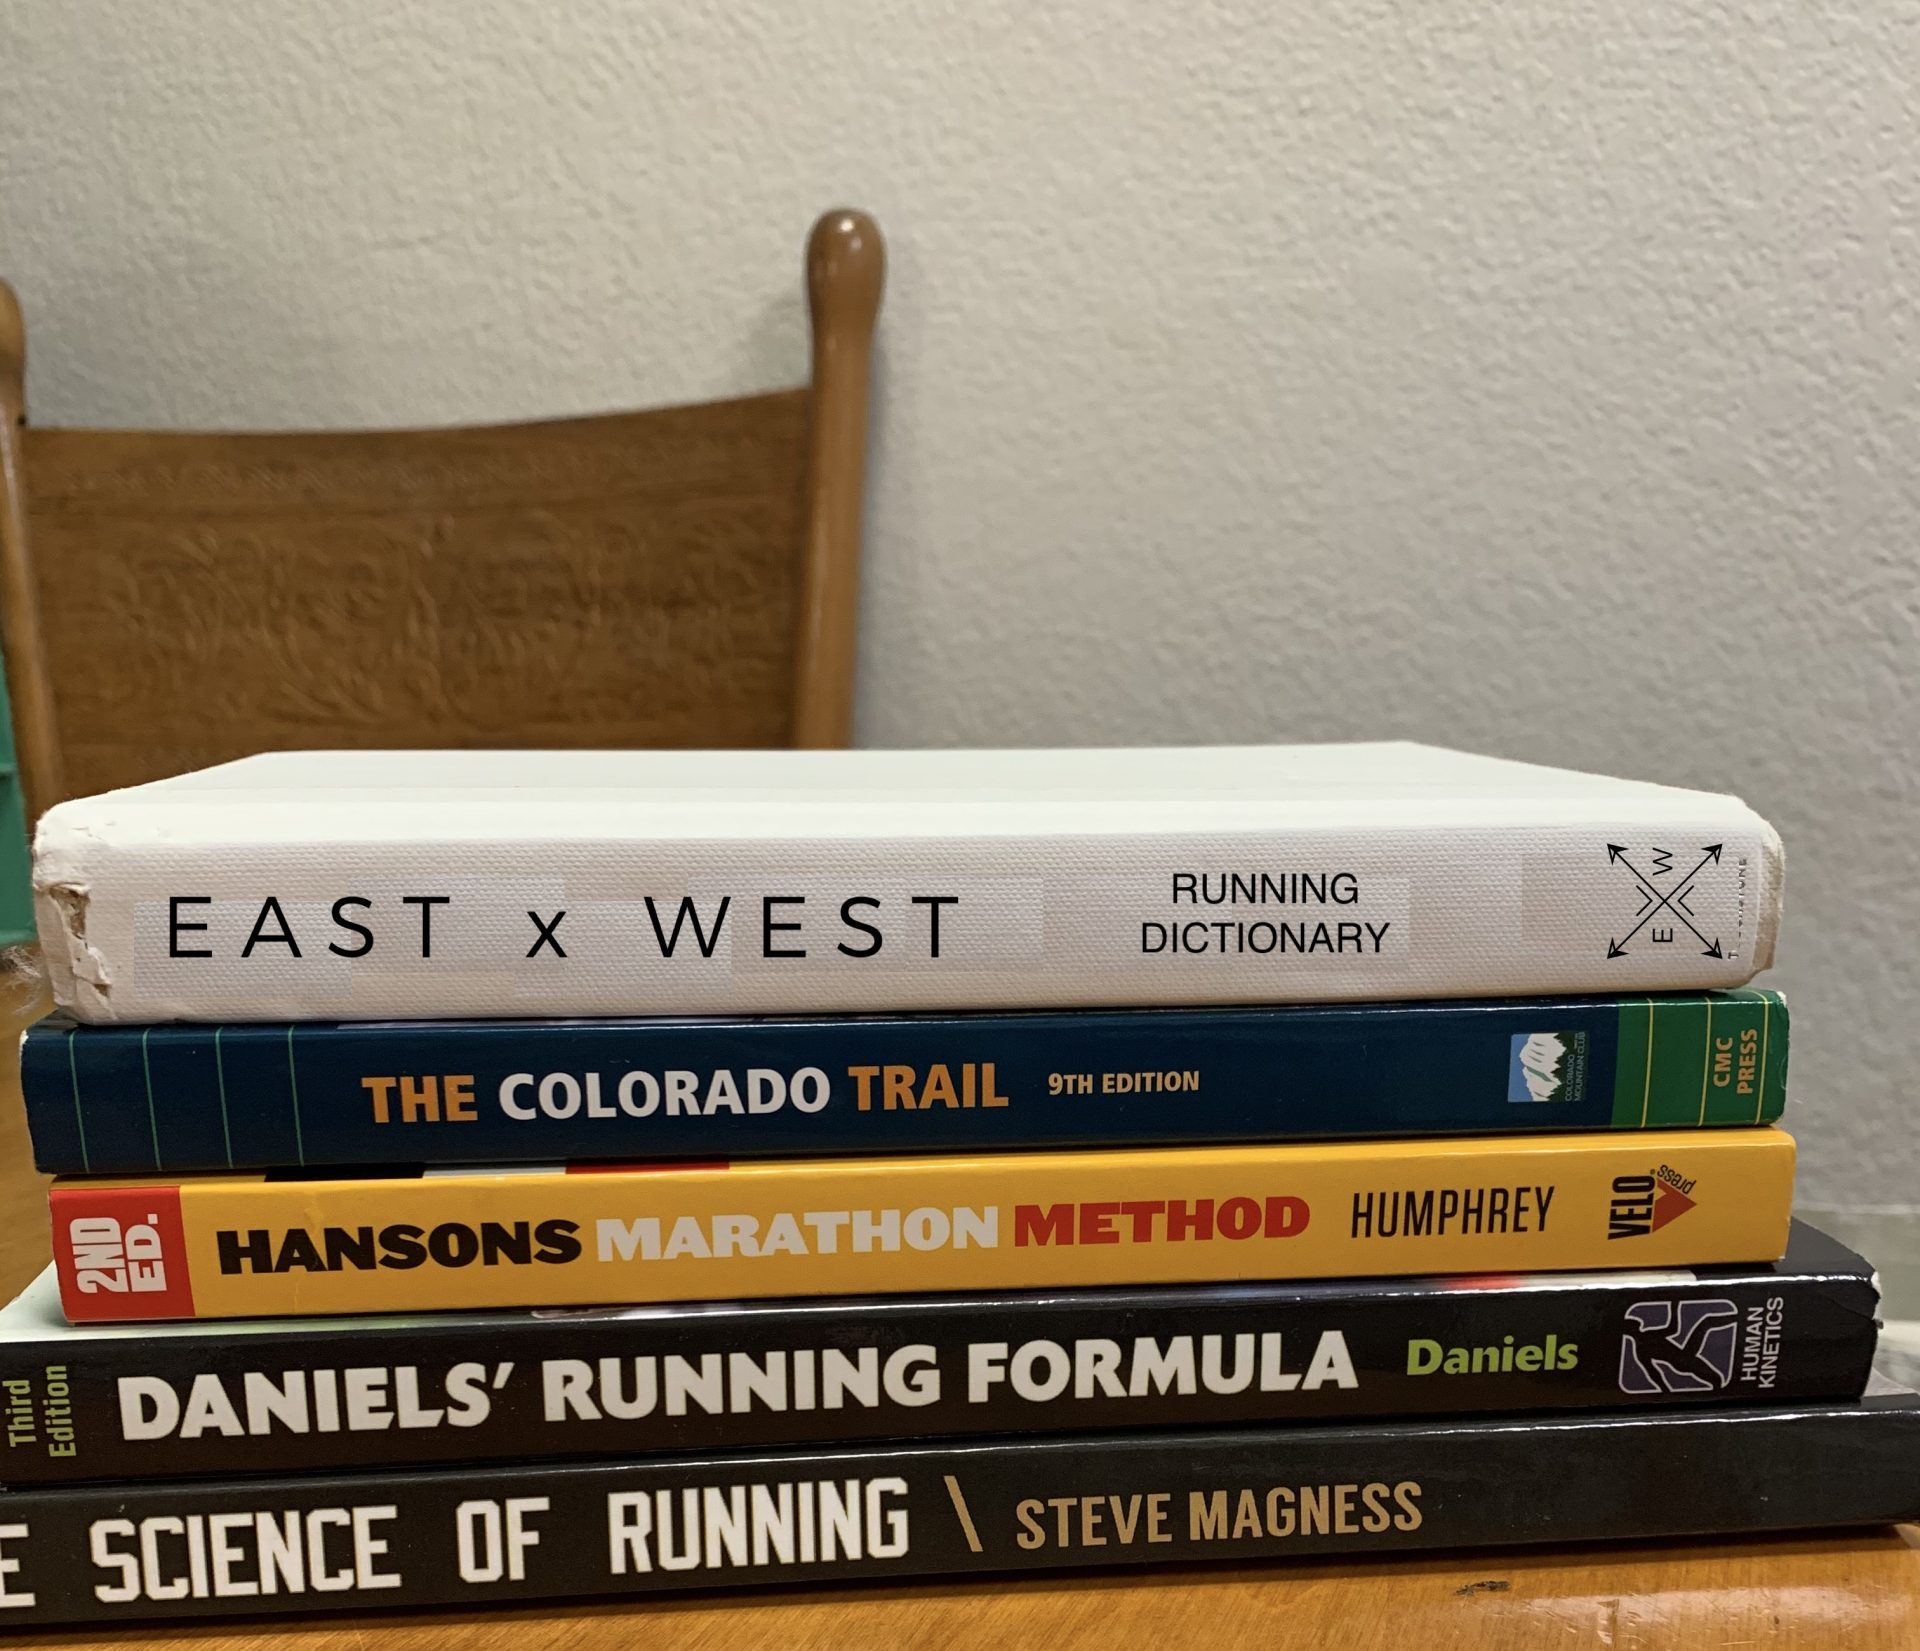 The East by West Distance Running Dictionary